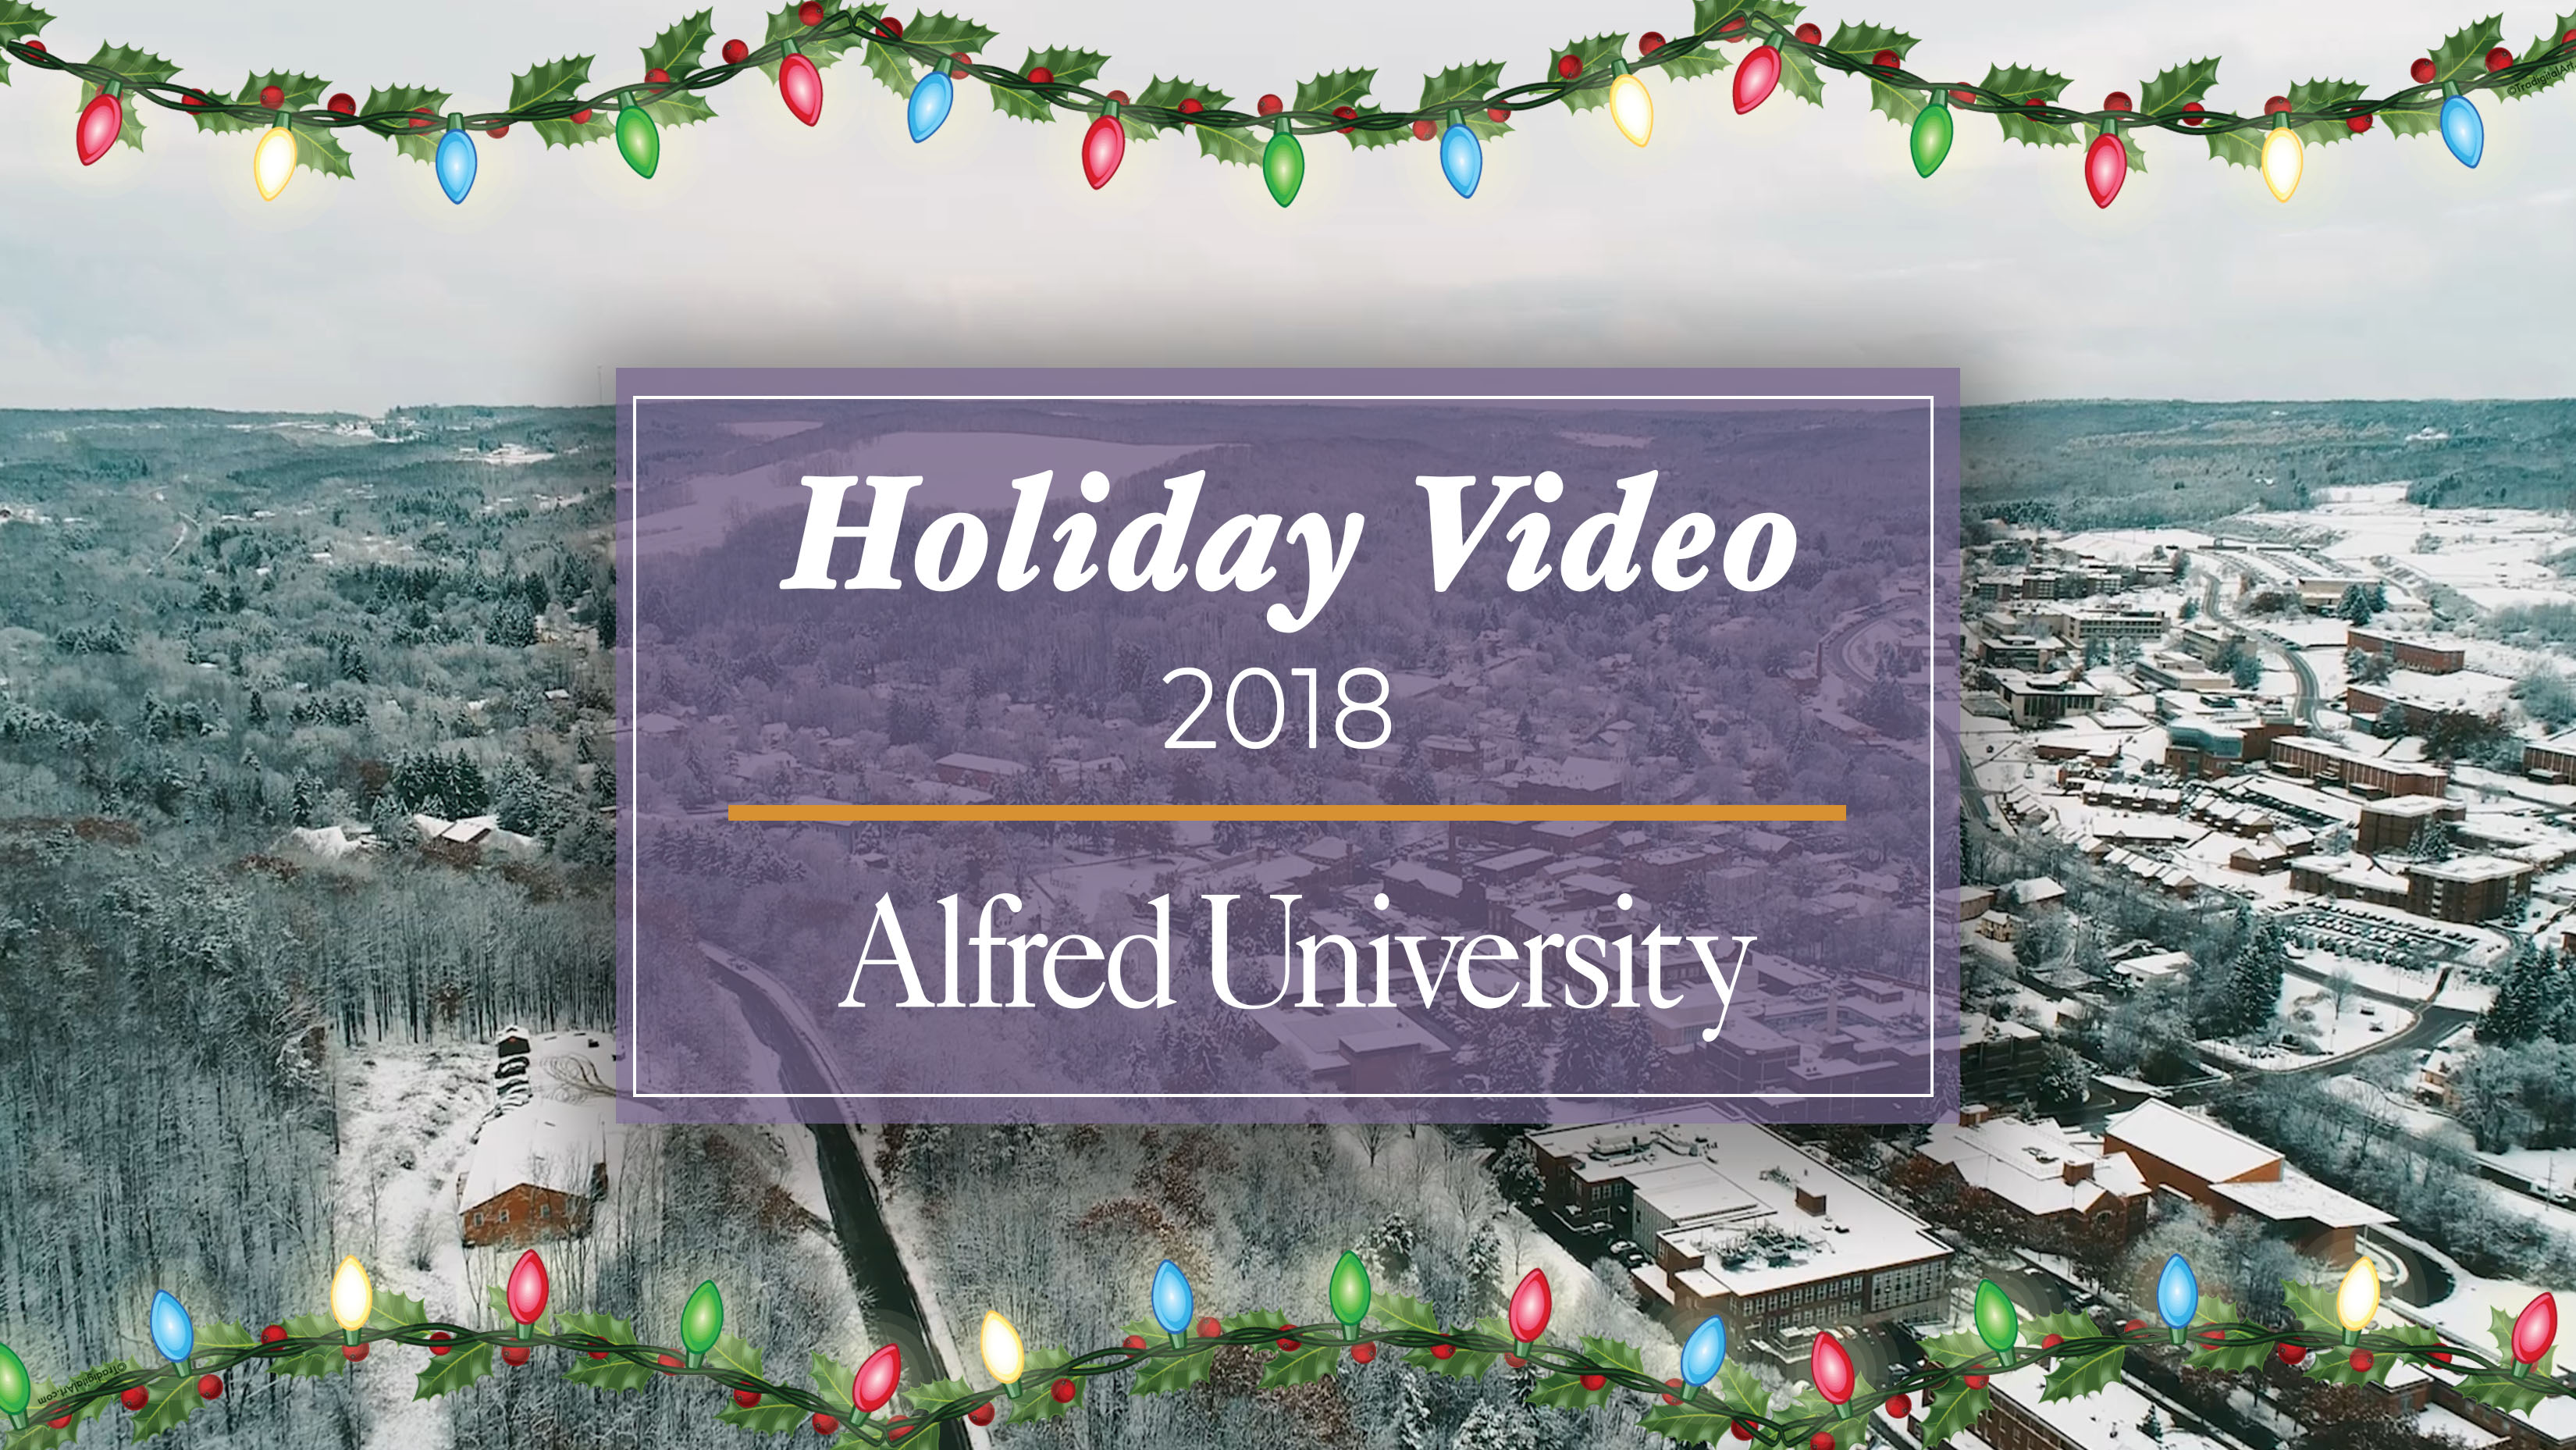 Alfred University Holiday Video 2018